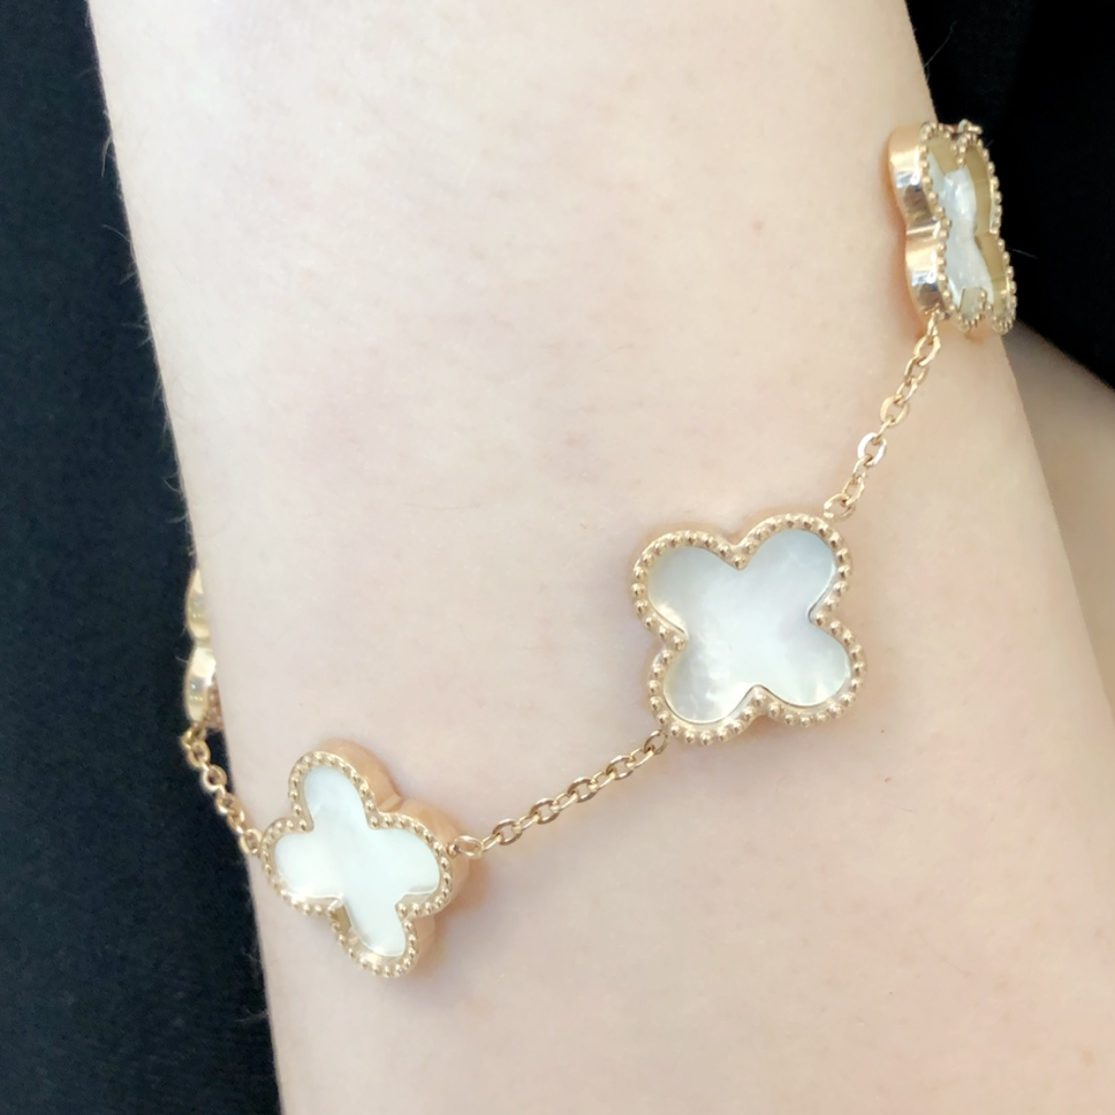 Farah - 18K Rose Gold Plated Clover Bracelet With Mother of Pearl Detail